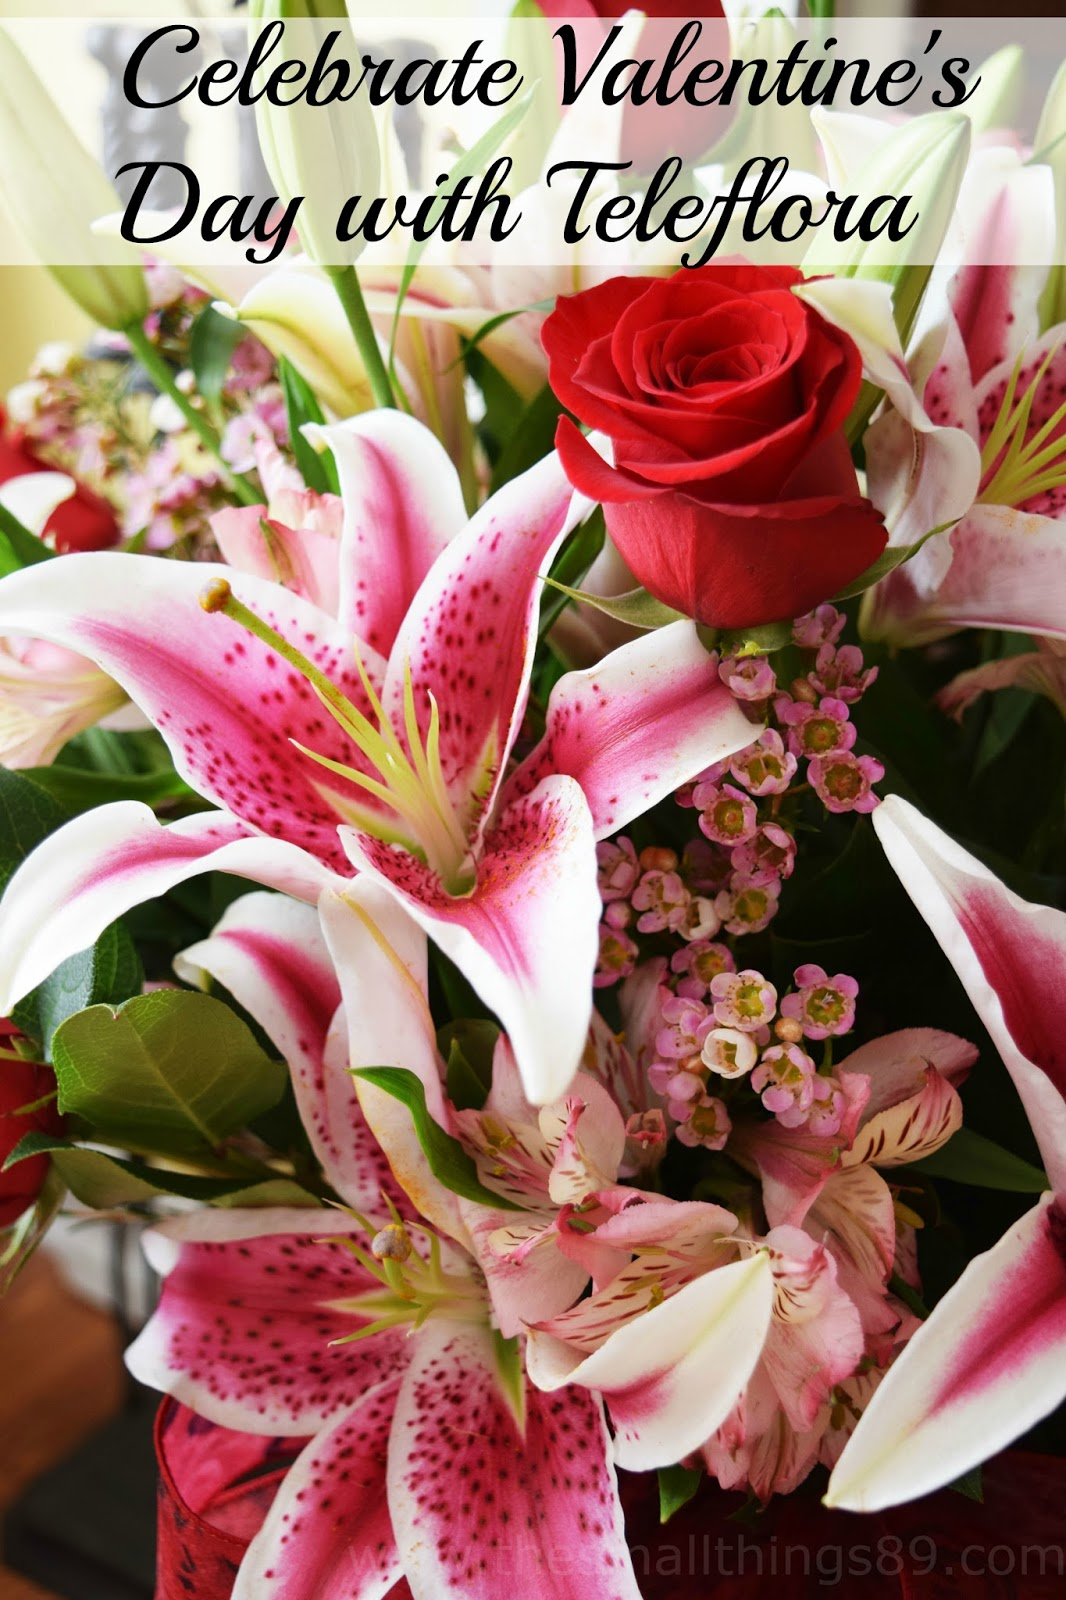 Celebrate Valentine's Day with Teleflora & Love Notes ...